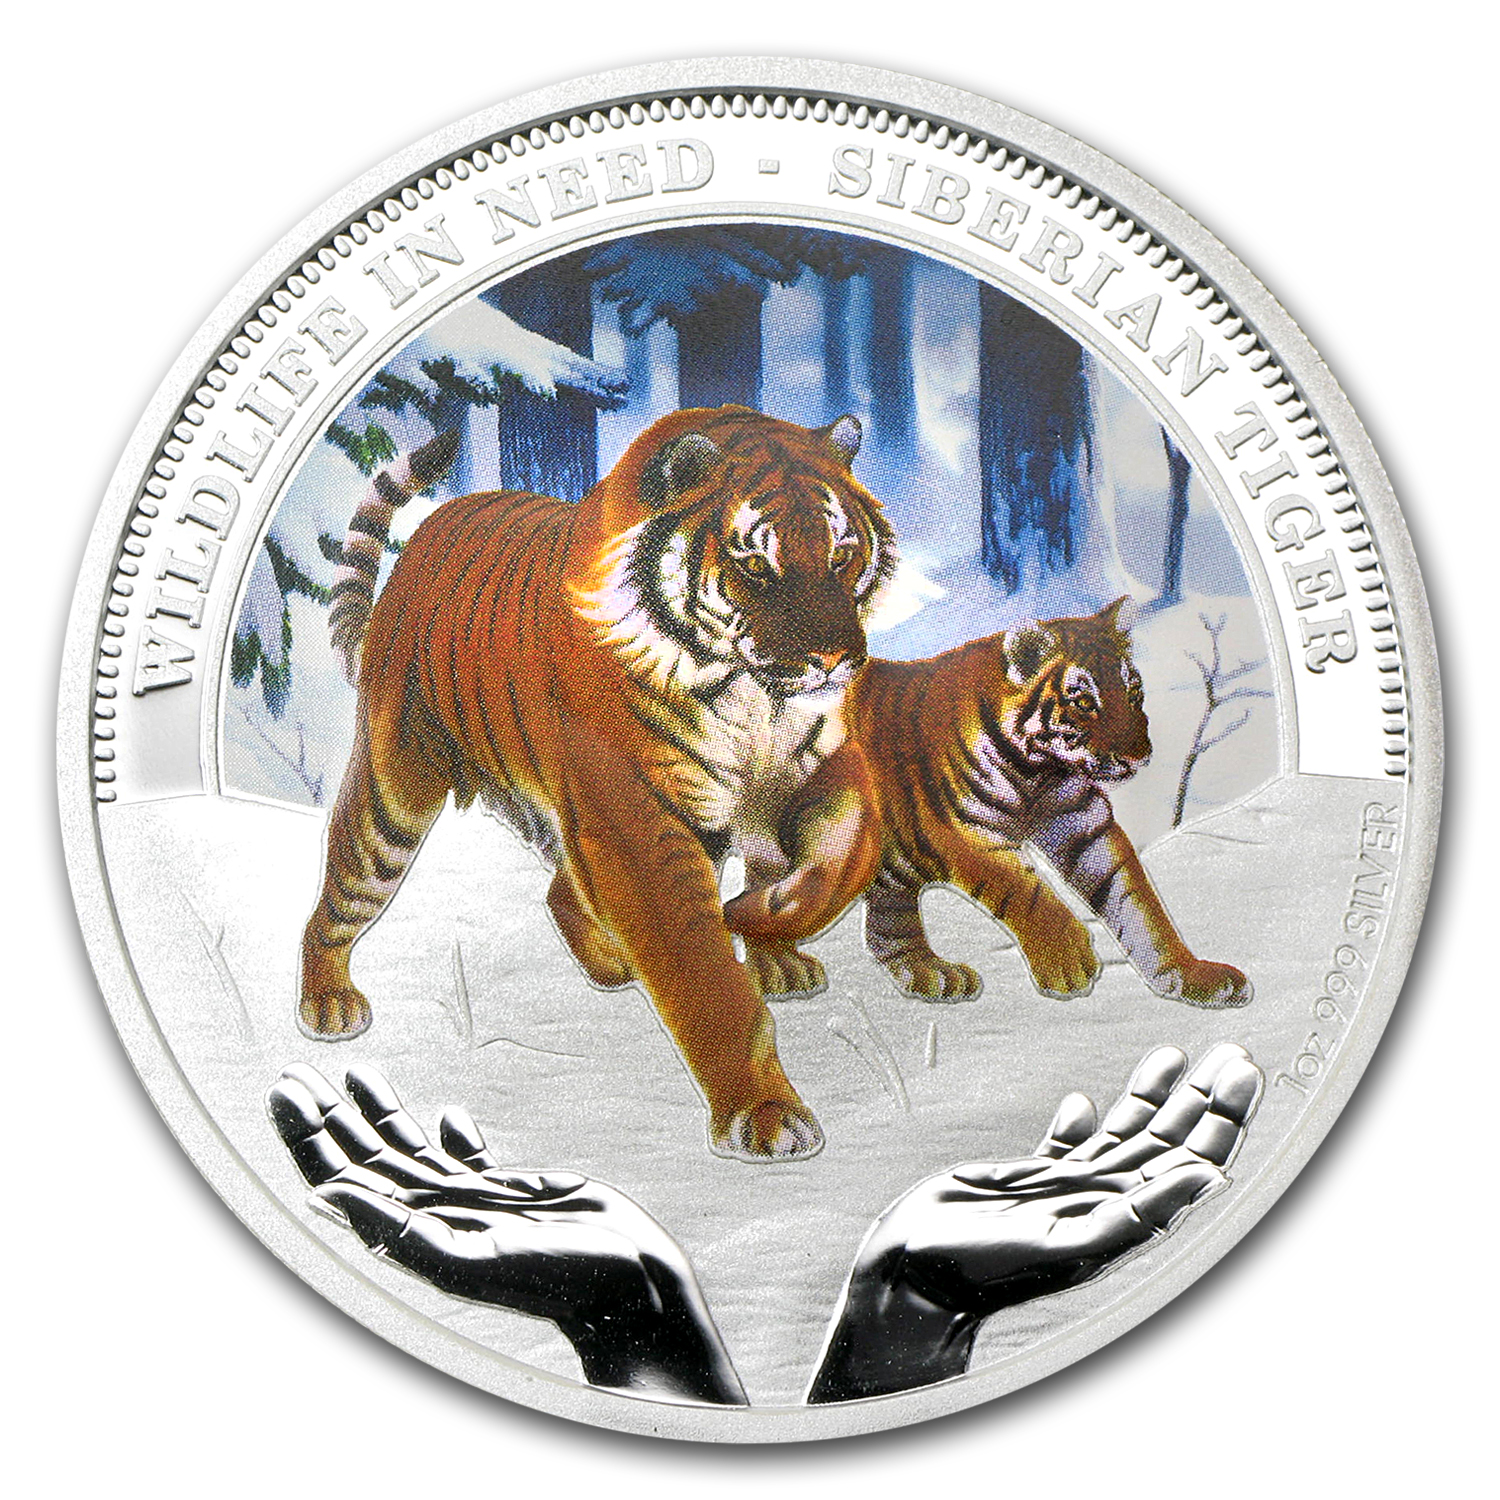 2012 Tuvalu 1 oz Silver Siberian Tiger Proof